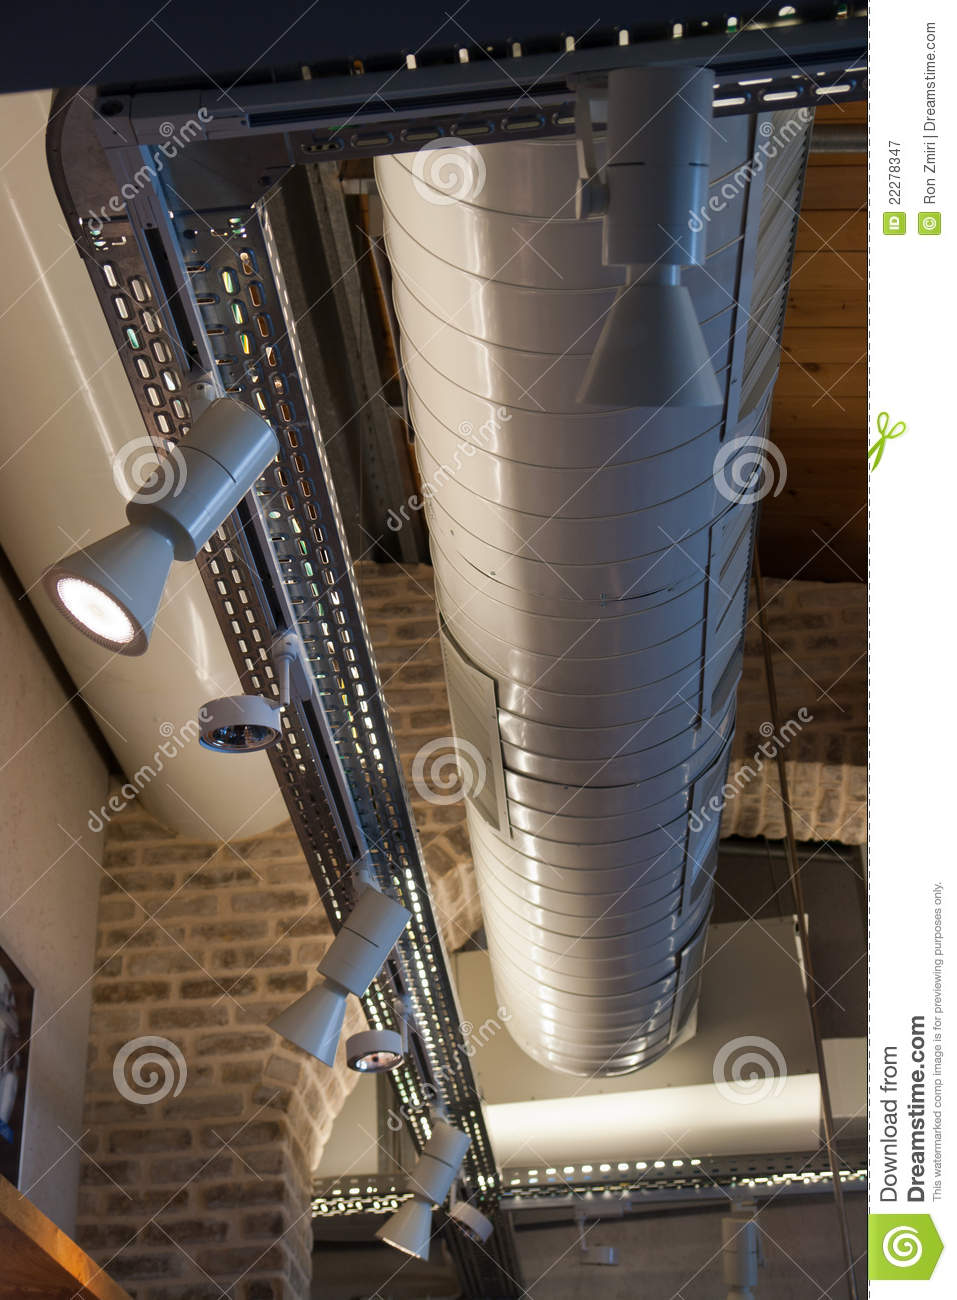 ventilation system in a modern factory stock image - image of iron